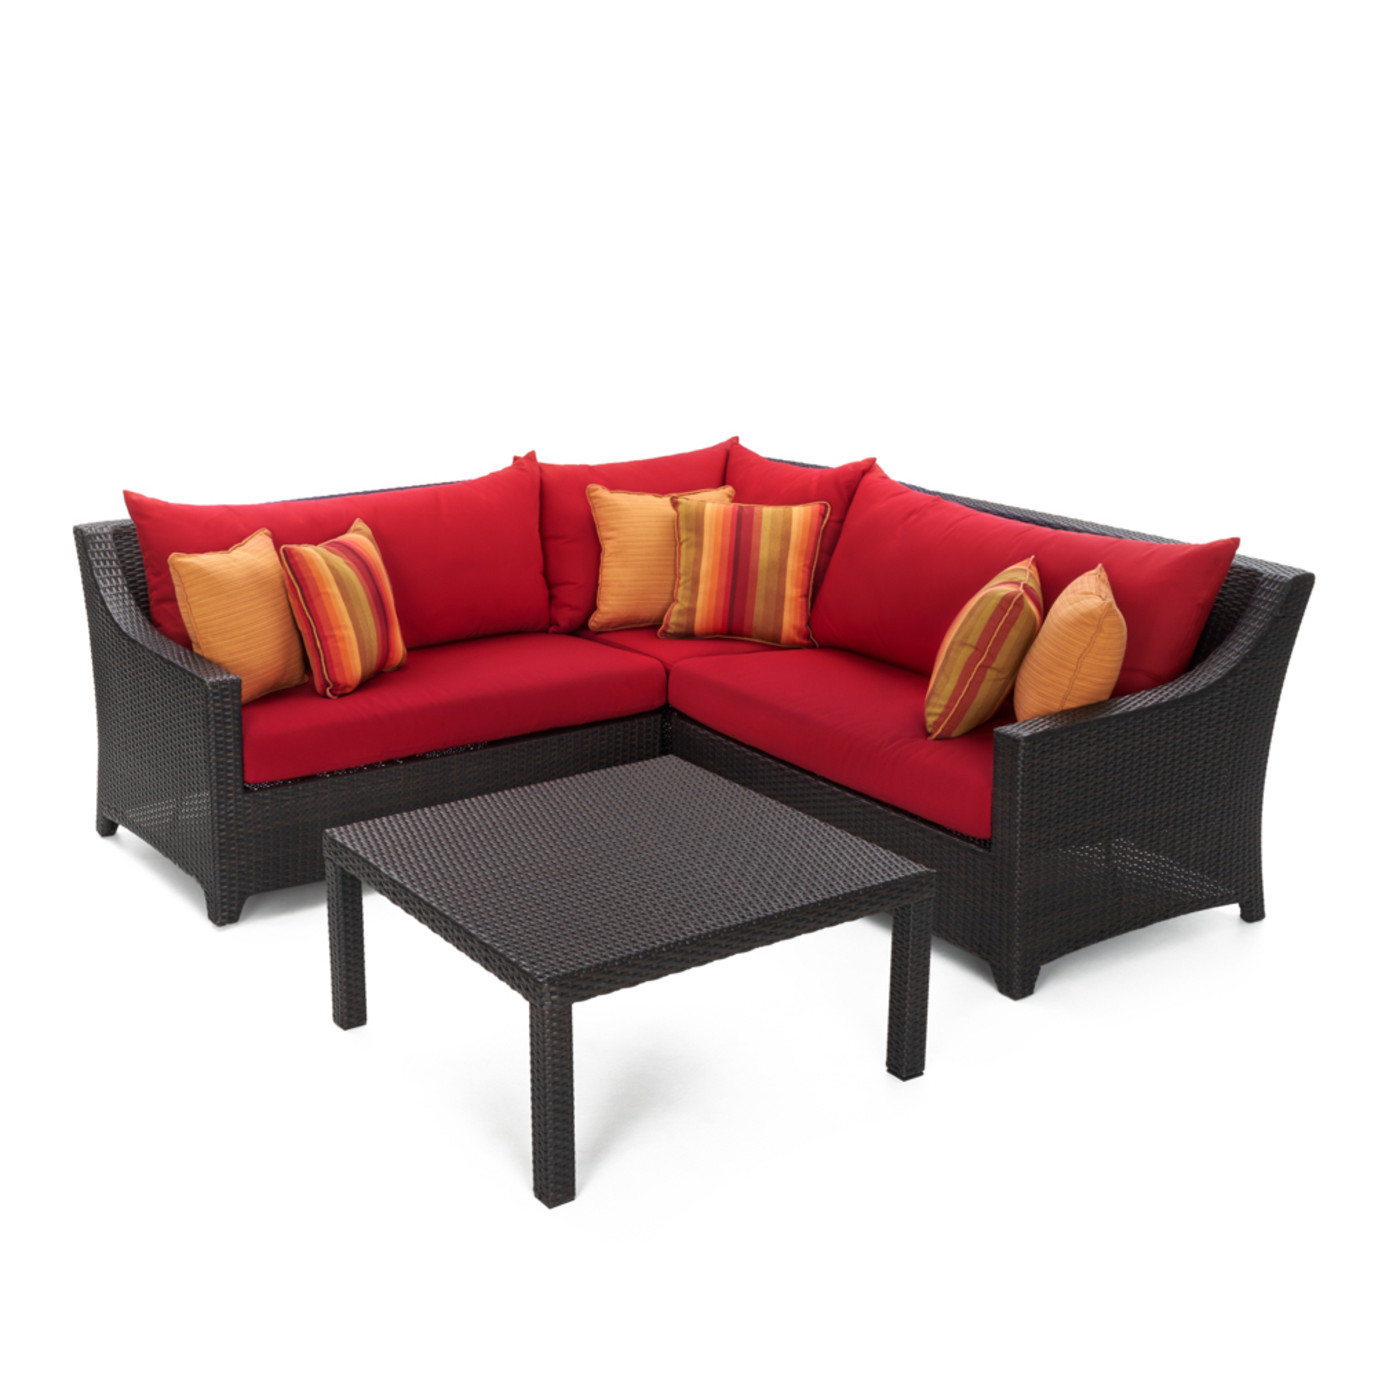 Deco™ 4pc Sectional and Table - Sunset Red